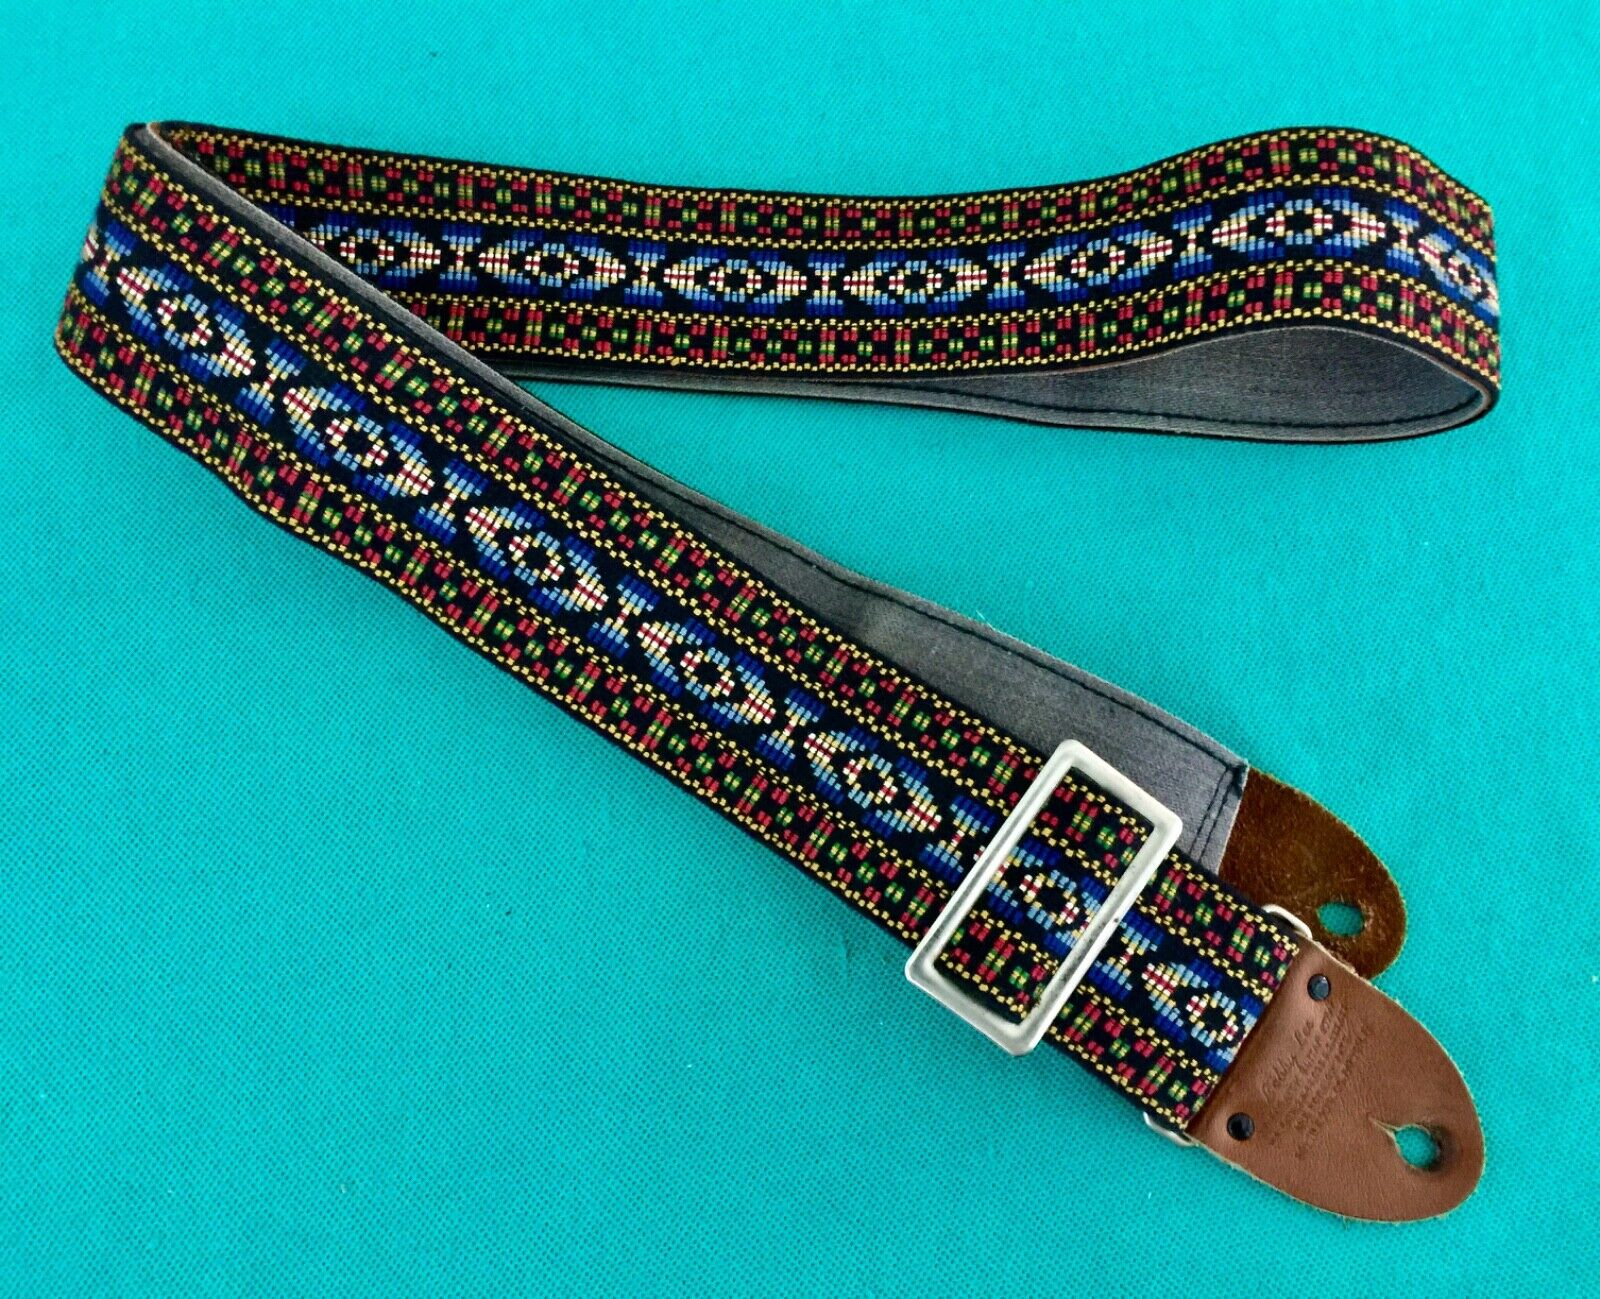 Vtg Bobby Lee Sottile Blau Bohemian Ace Style Woven Guitar Strap Made in USA